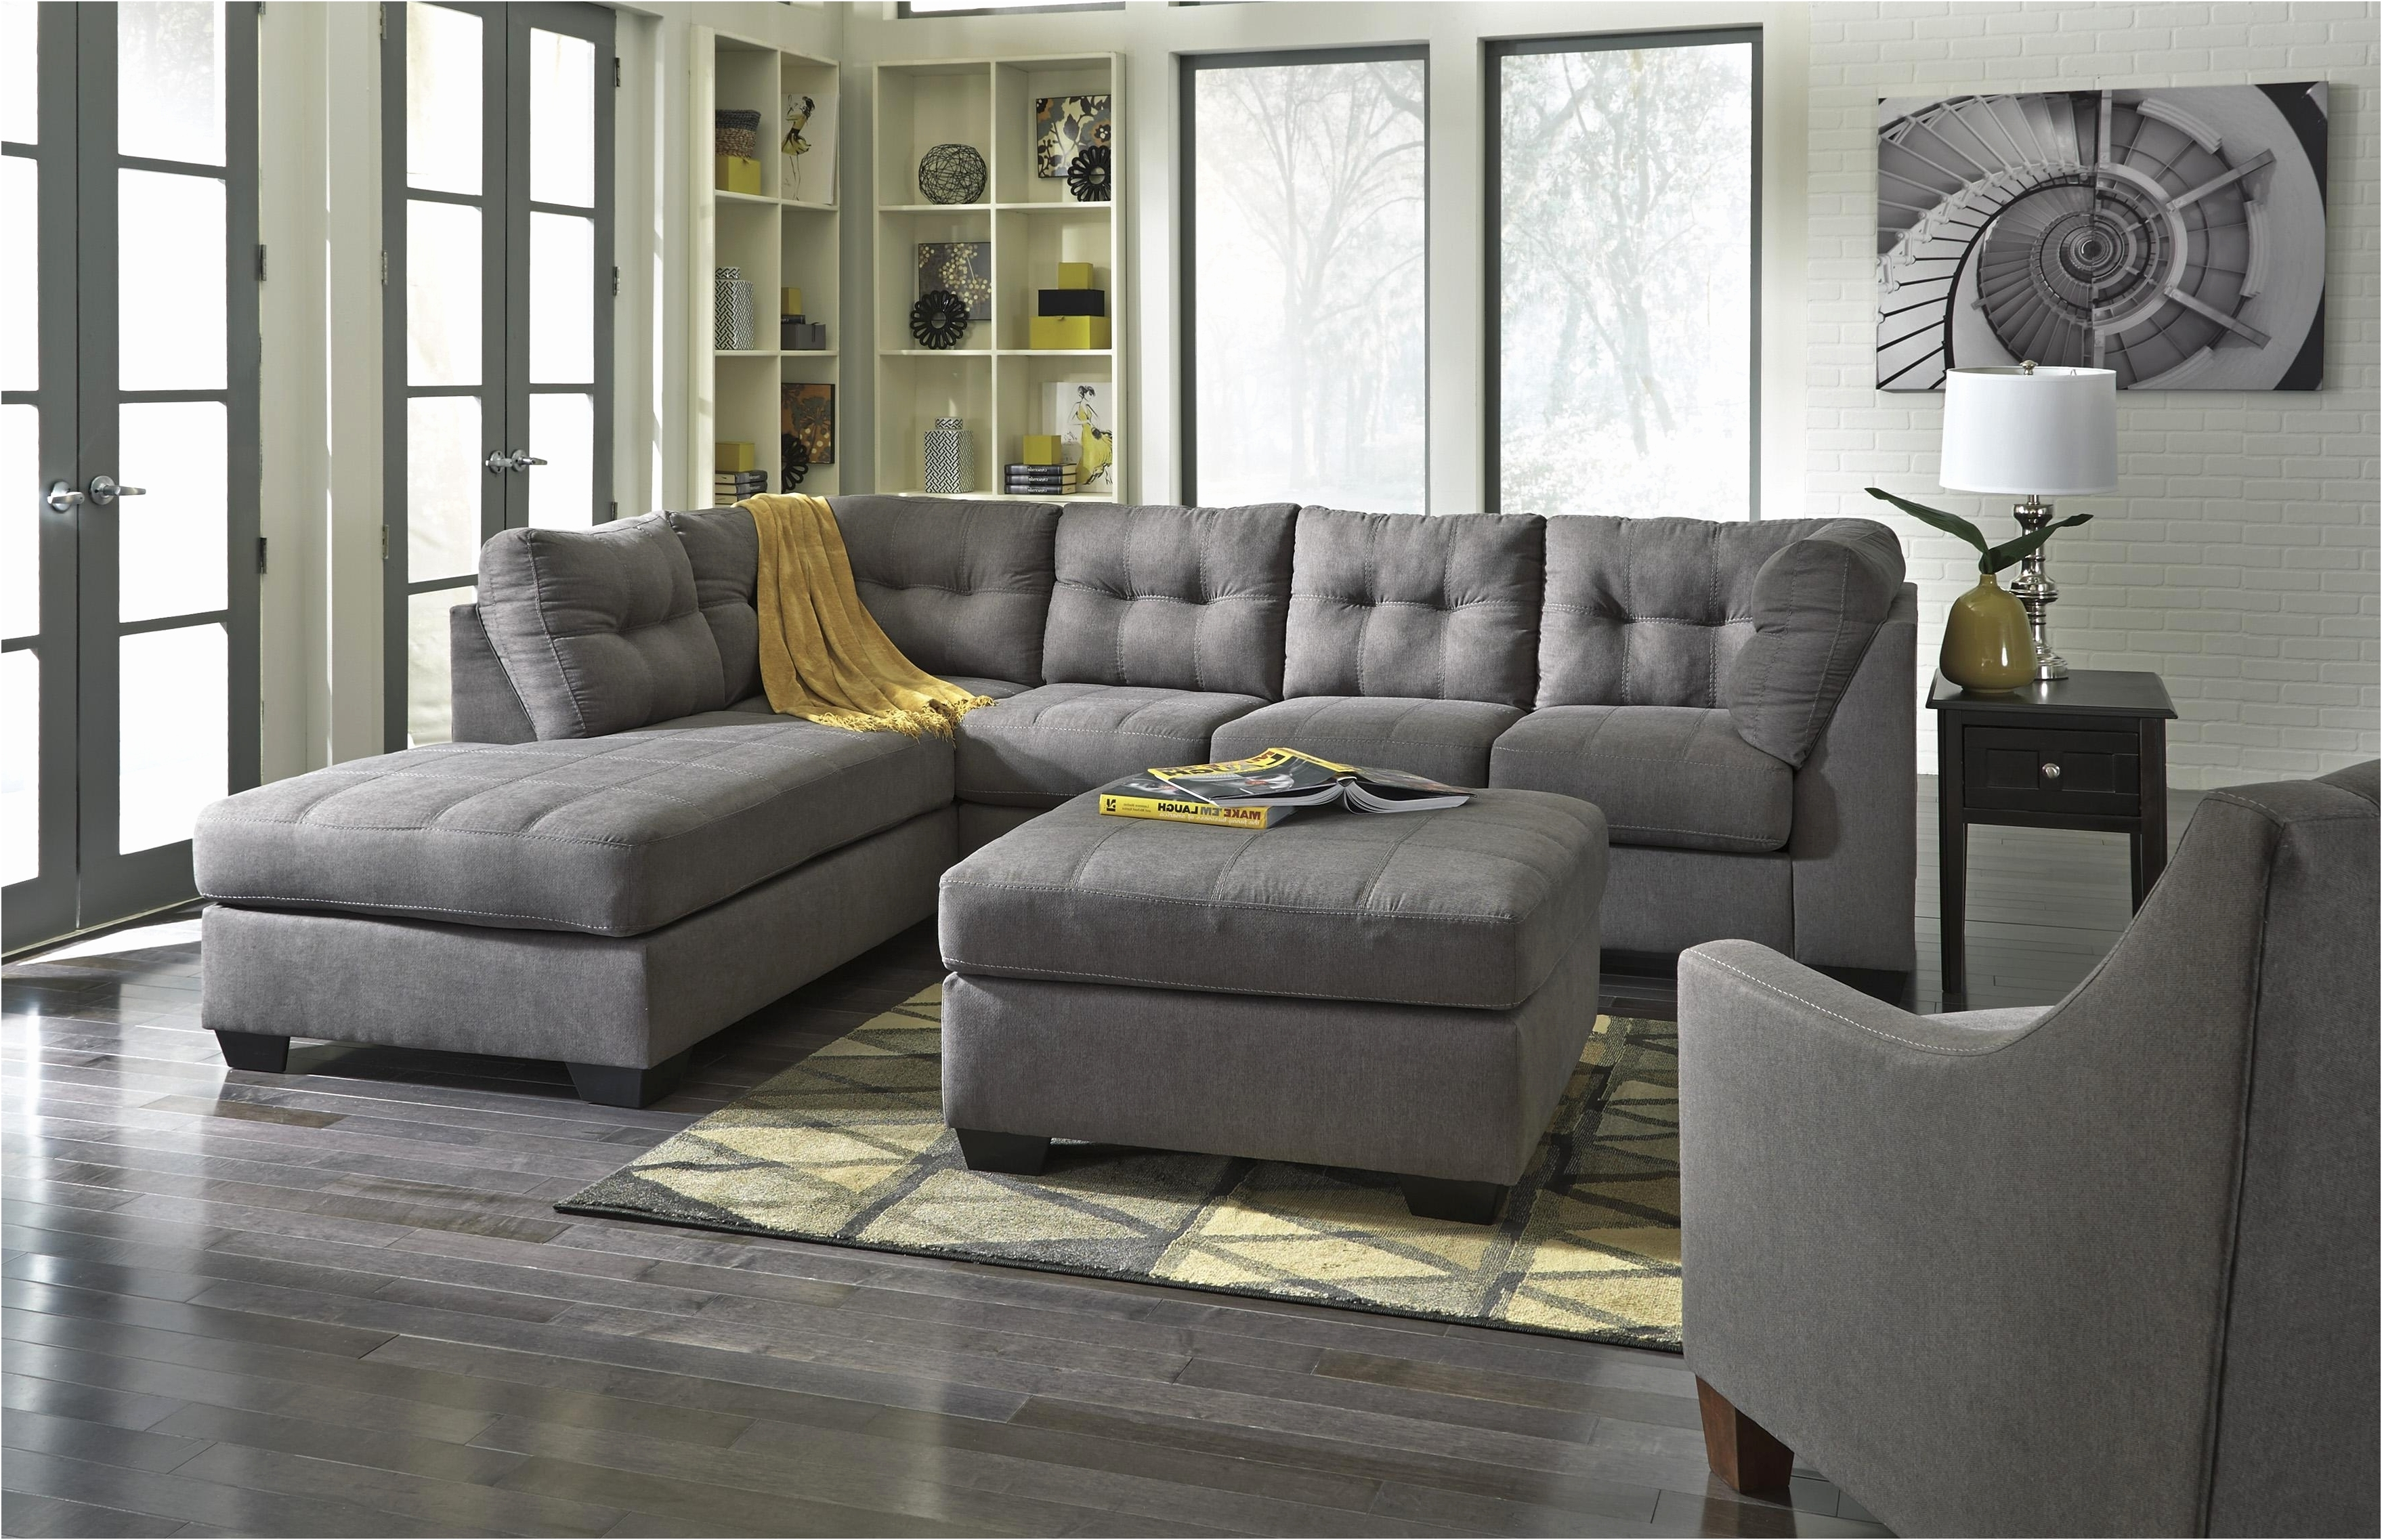 Unique Berkline Leather Sofa Elegant – Intuisiblog Throughout Favorite Berkline Sectional Sofas (View 5 of 15)